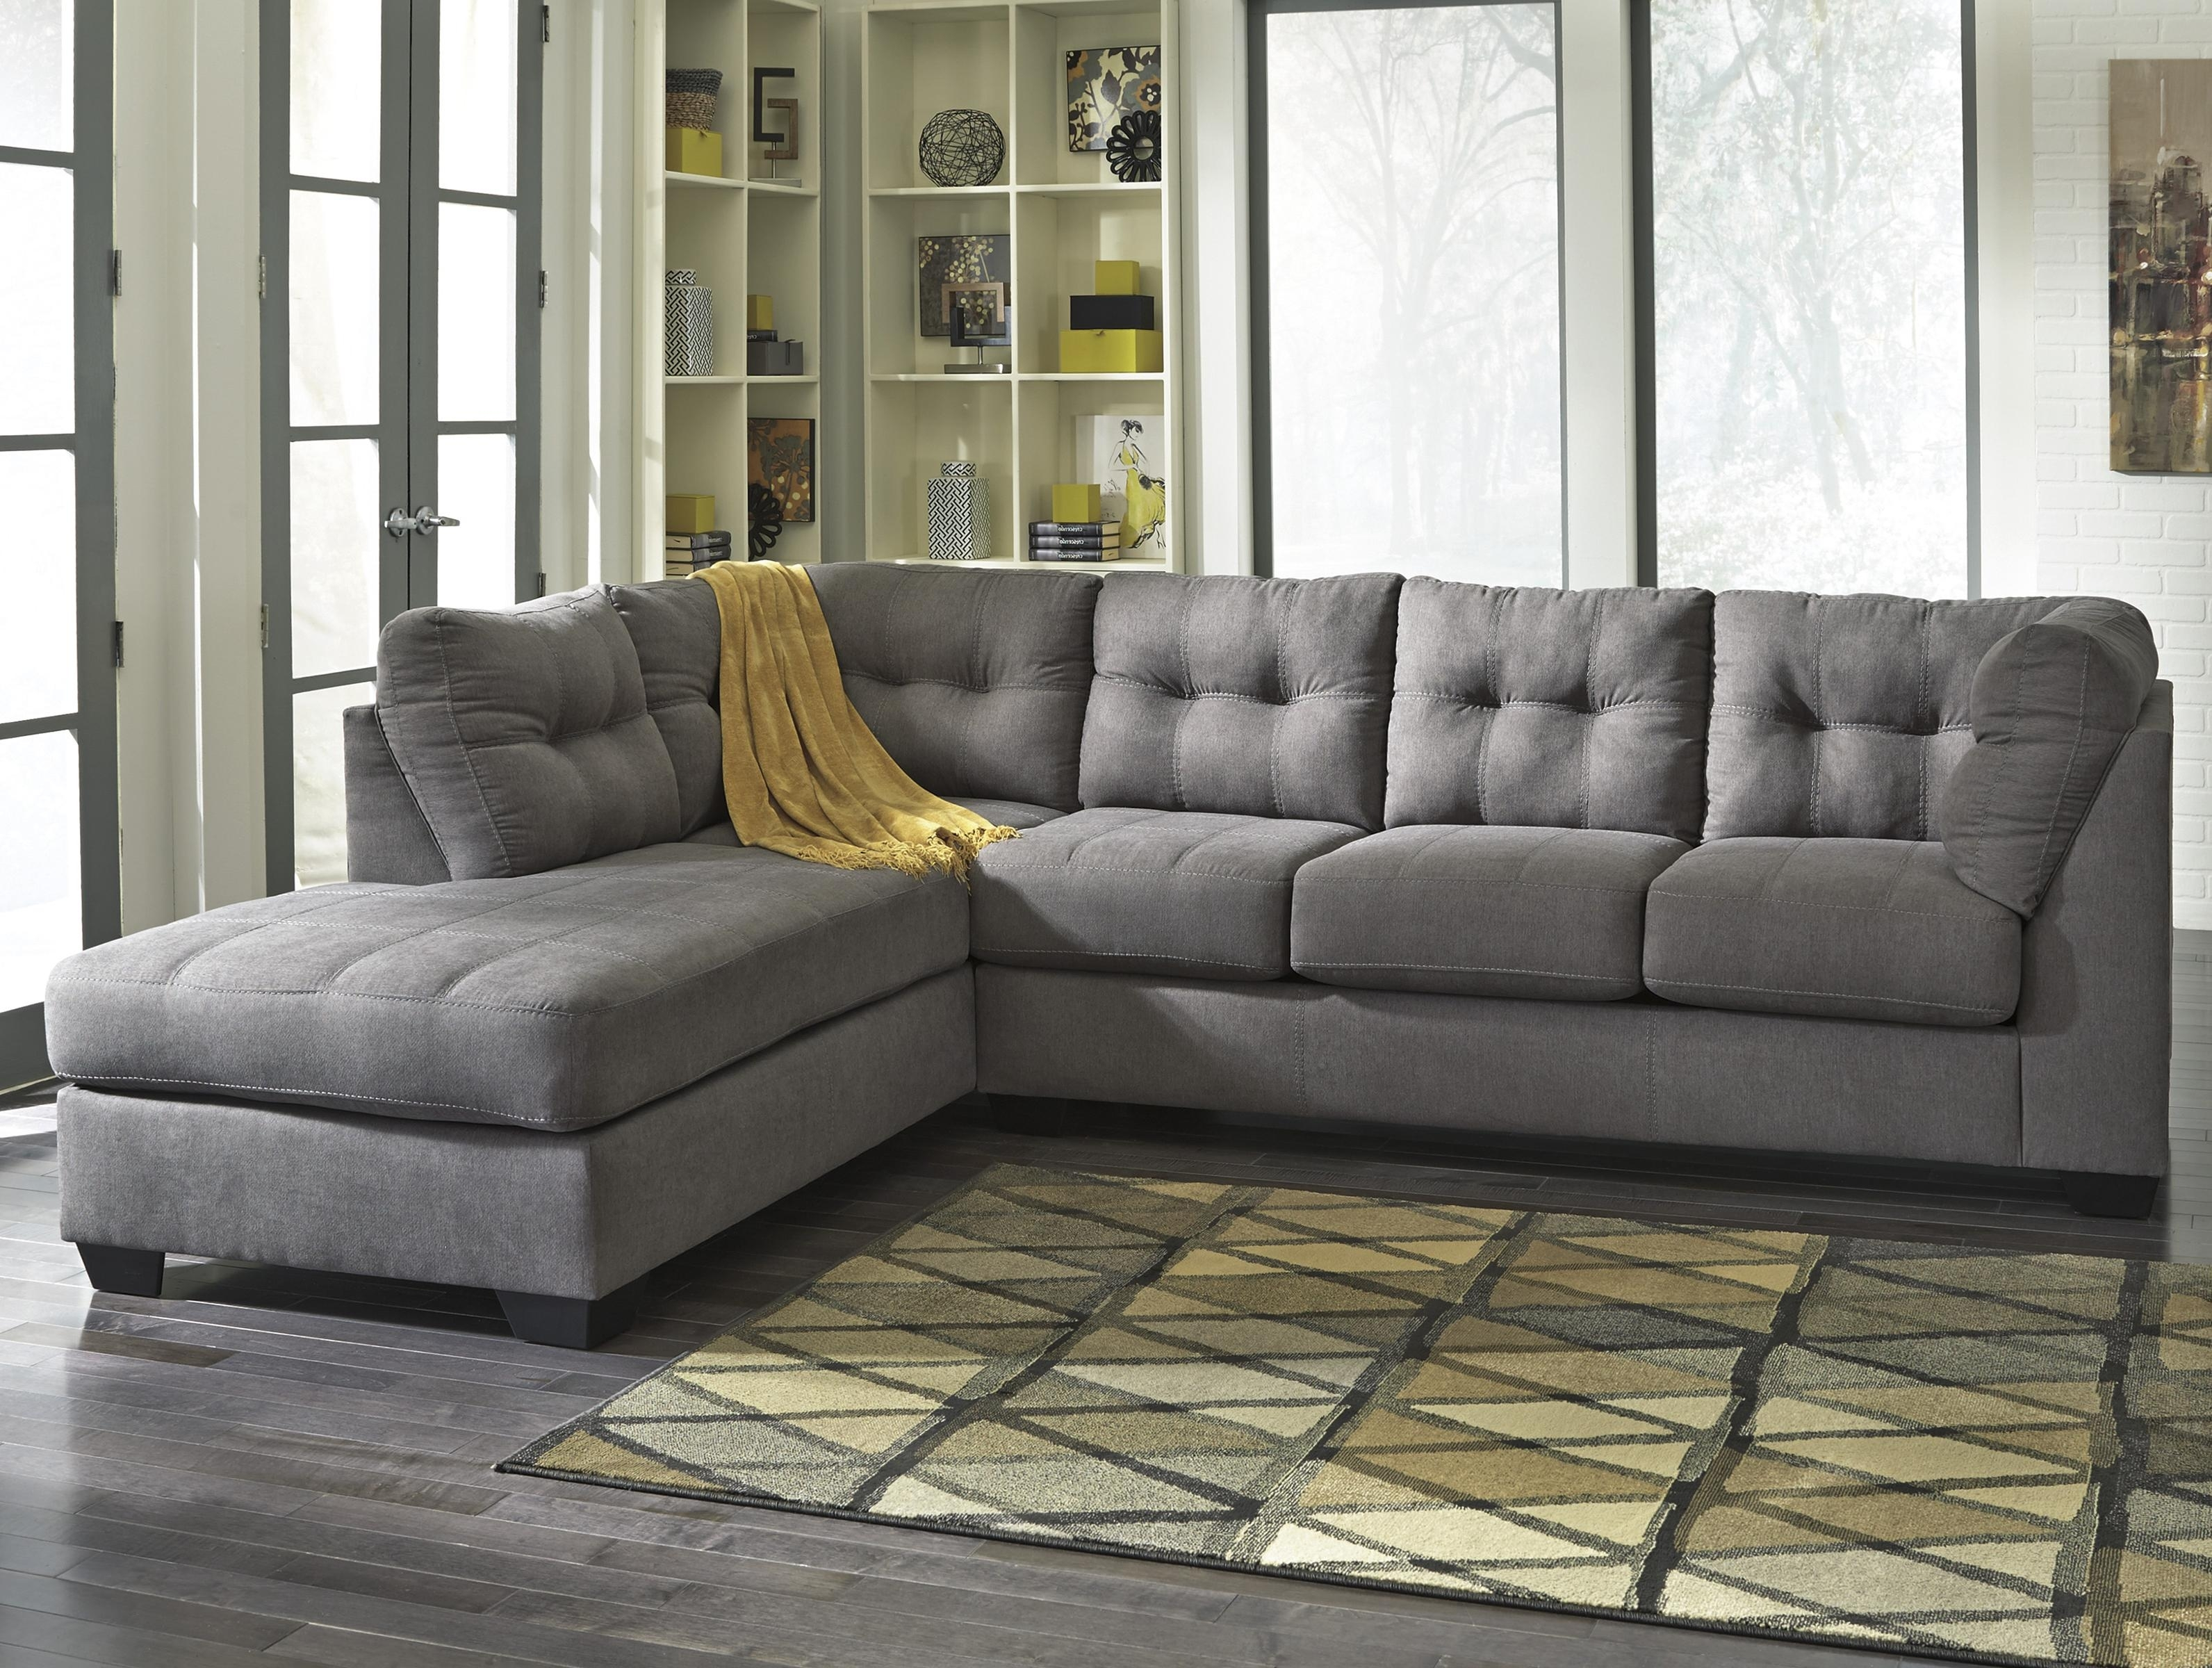 Choosing 2 Piece Sectional Sofa – Elites Home Decor With Regard To Delano 2 Piece Sectionals With Laf Oversized Chaise (Image 8 of 25)